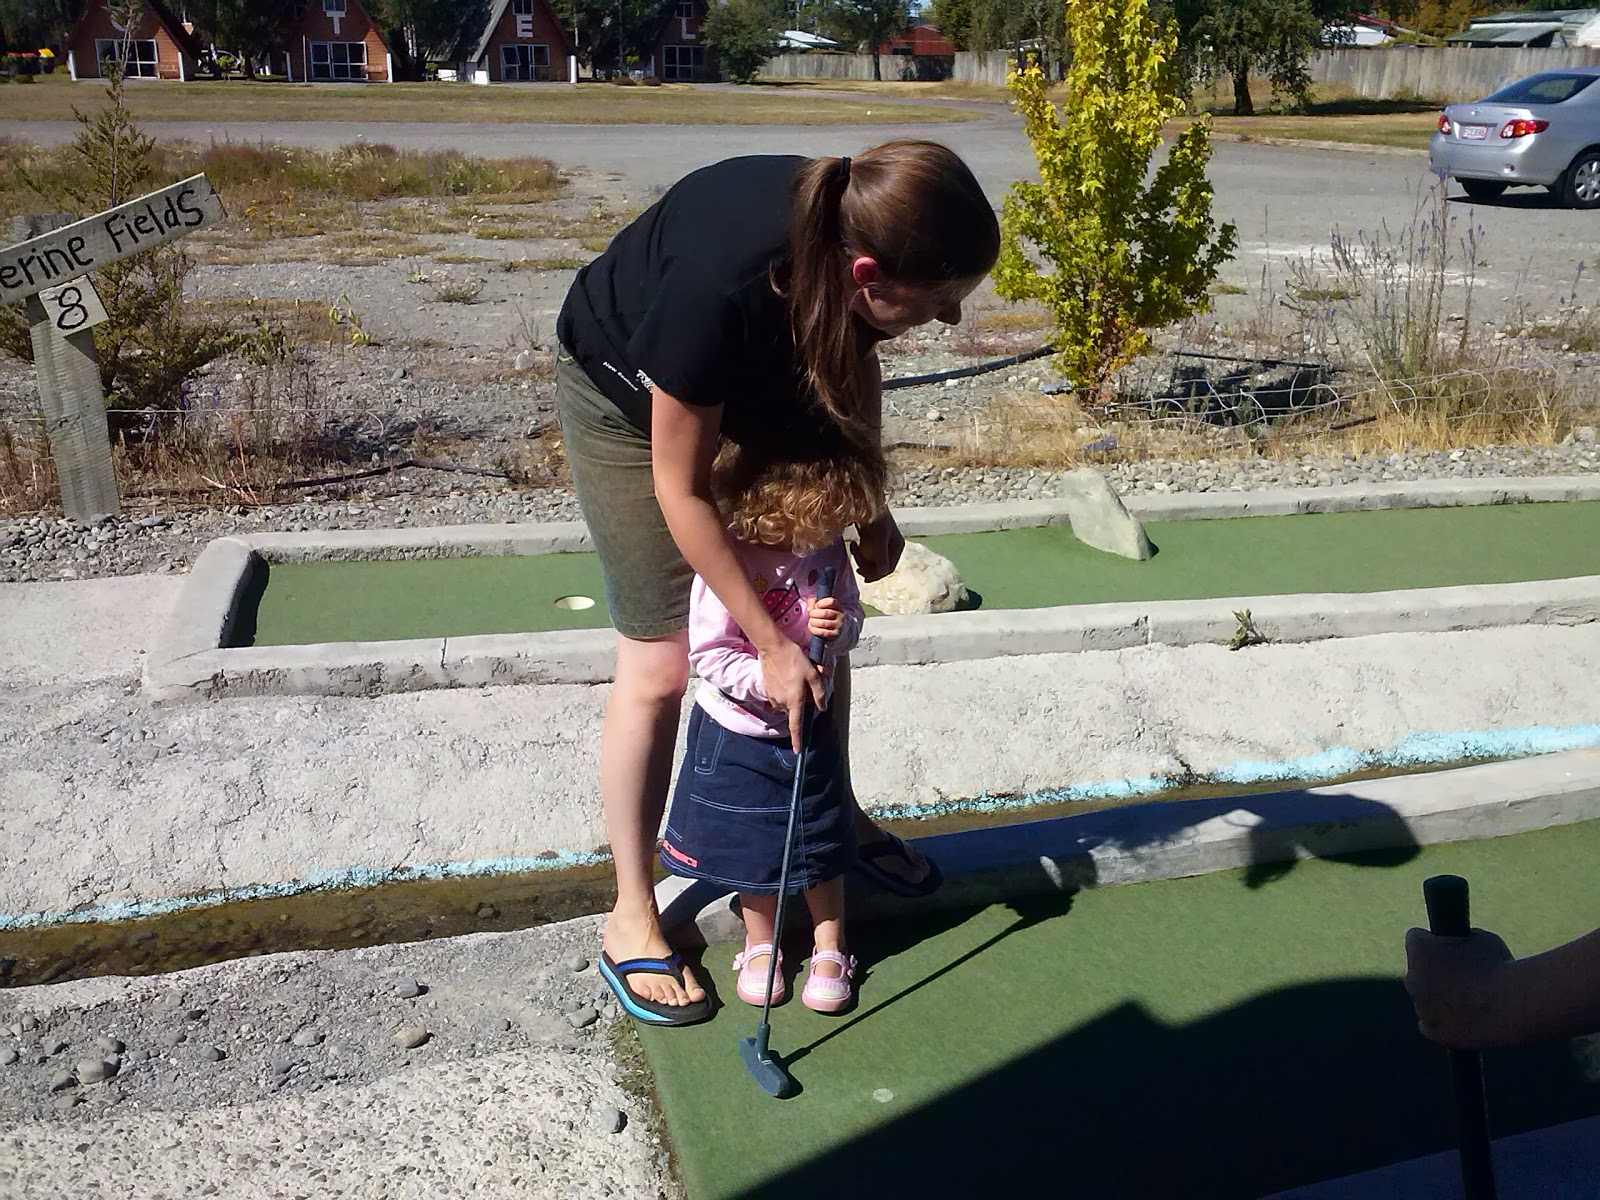 Learning to putt